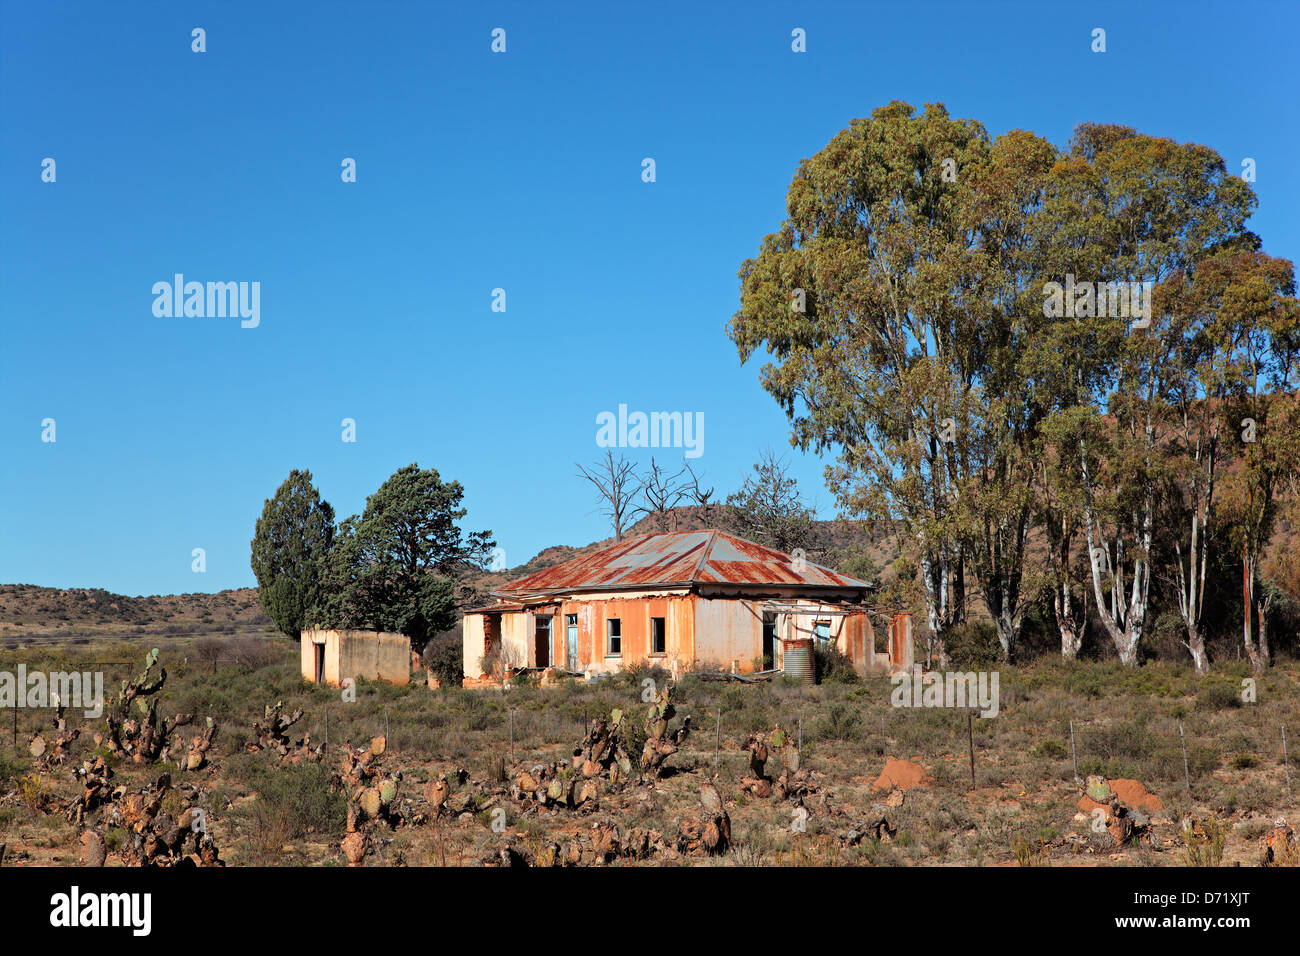 Abandoned rural farm house, South Africa Stock Photo